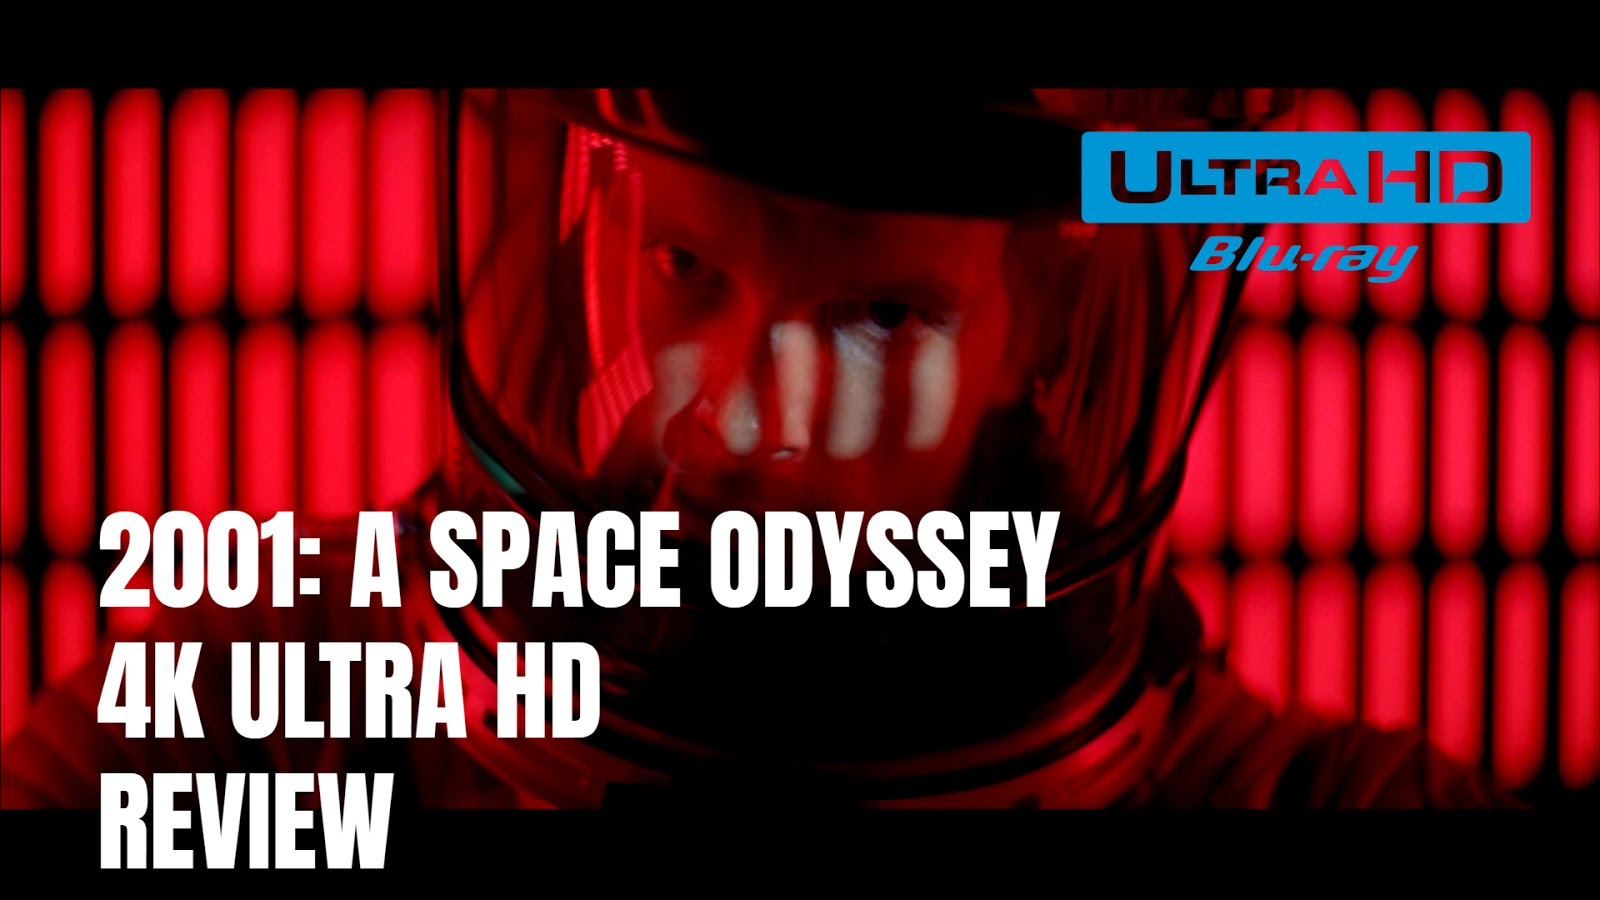 2001: A Space Odyssey 4k Ultra HD Blu-ray Review